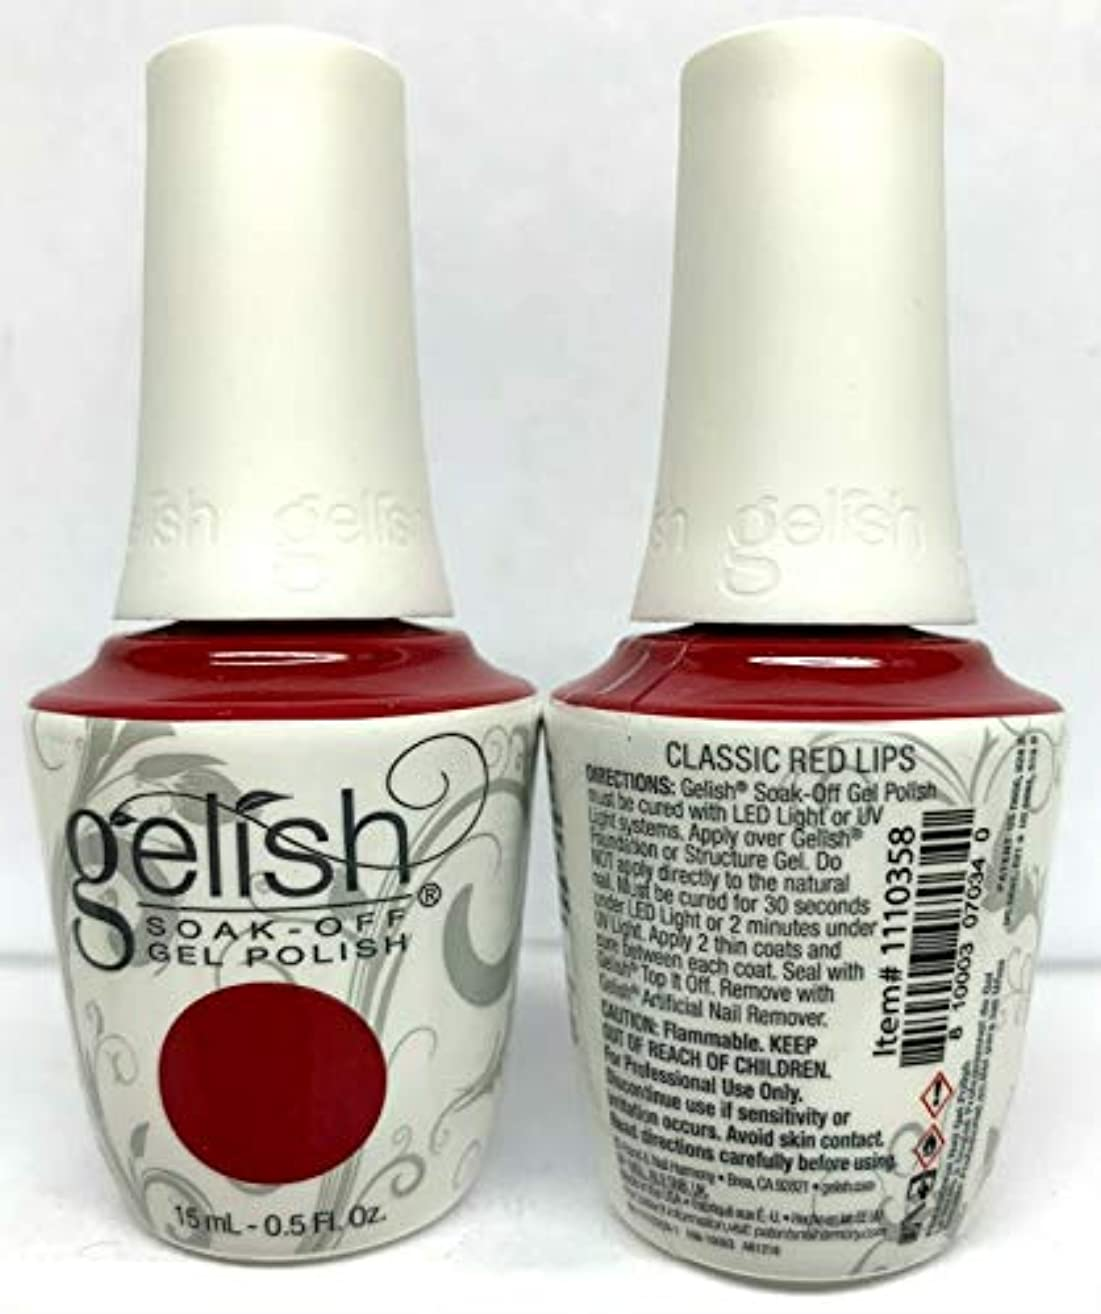 評判エスカレータースマートHarmony Gelish - Forever Marilyn Fall 2019 Collection - Classic Red Lips - 15ml / 0.5oz